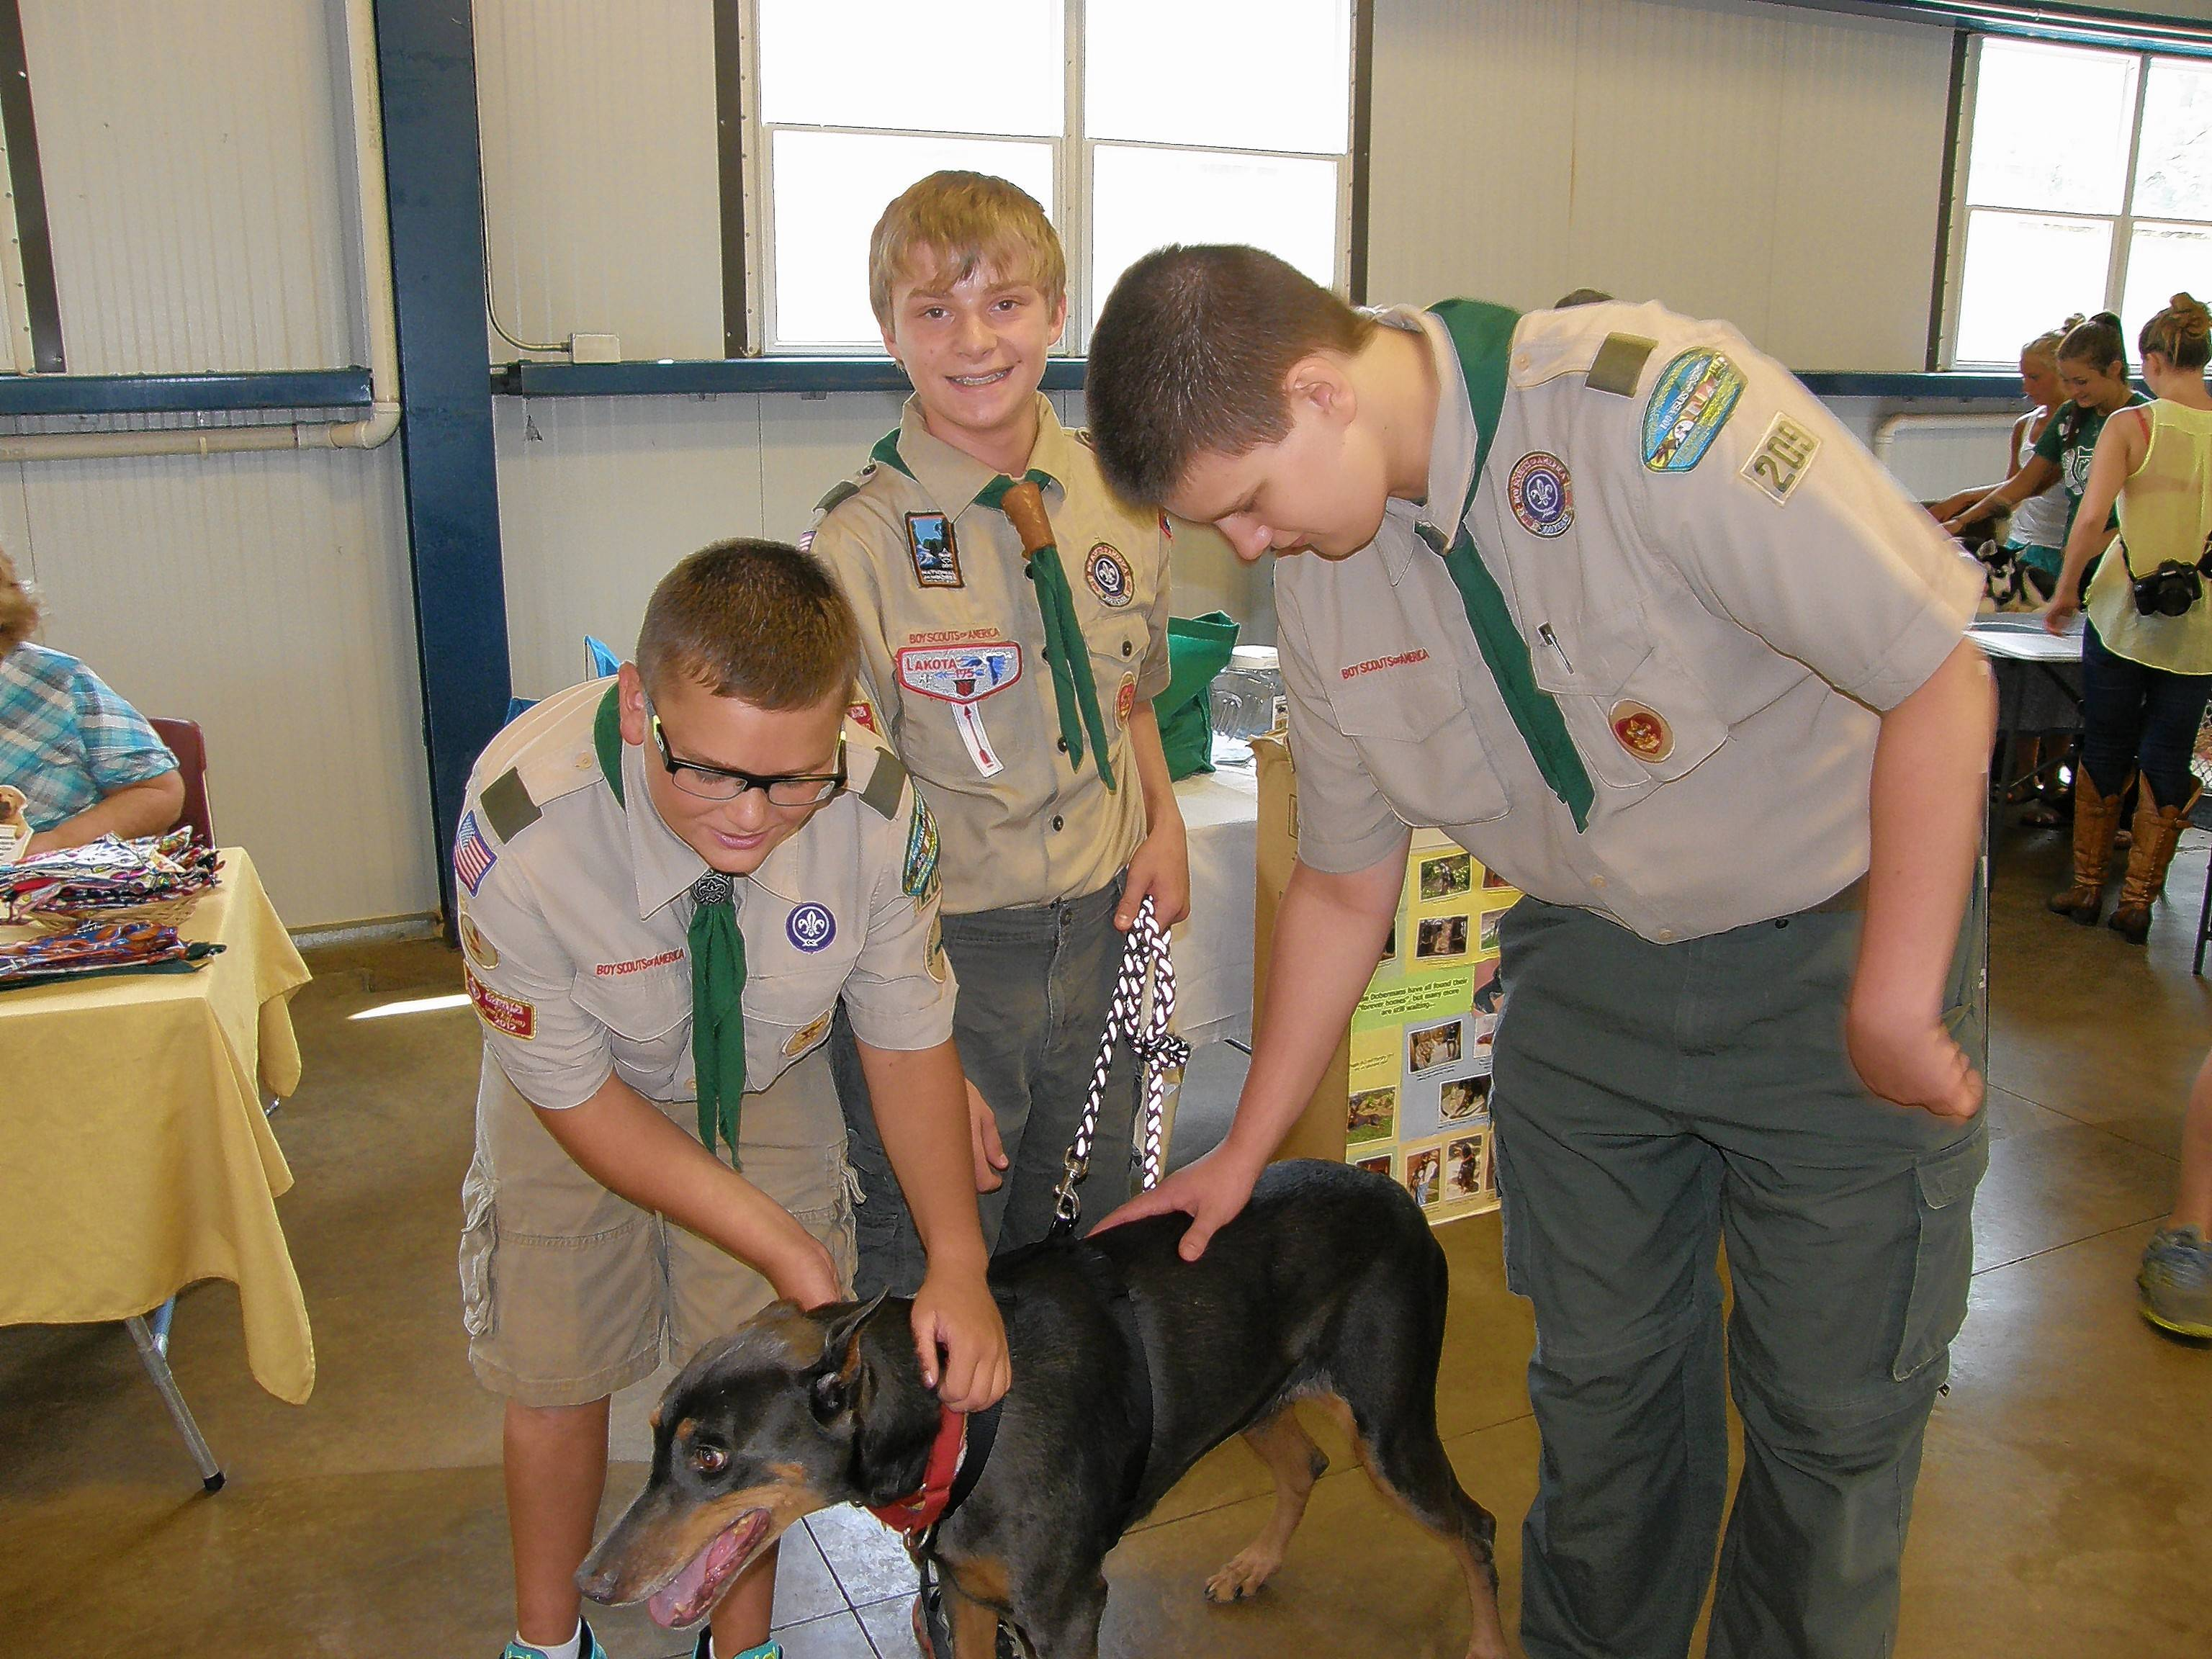 Tyler Matuszczak, center, and his fellow Boy Scouts visit with the dogs at Illinois Doberman Rescue Plus. Matuszczak chose to help the Barrington-based nonprofit animal rescue for his Eagle Scout project.